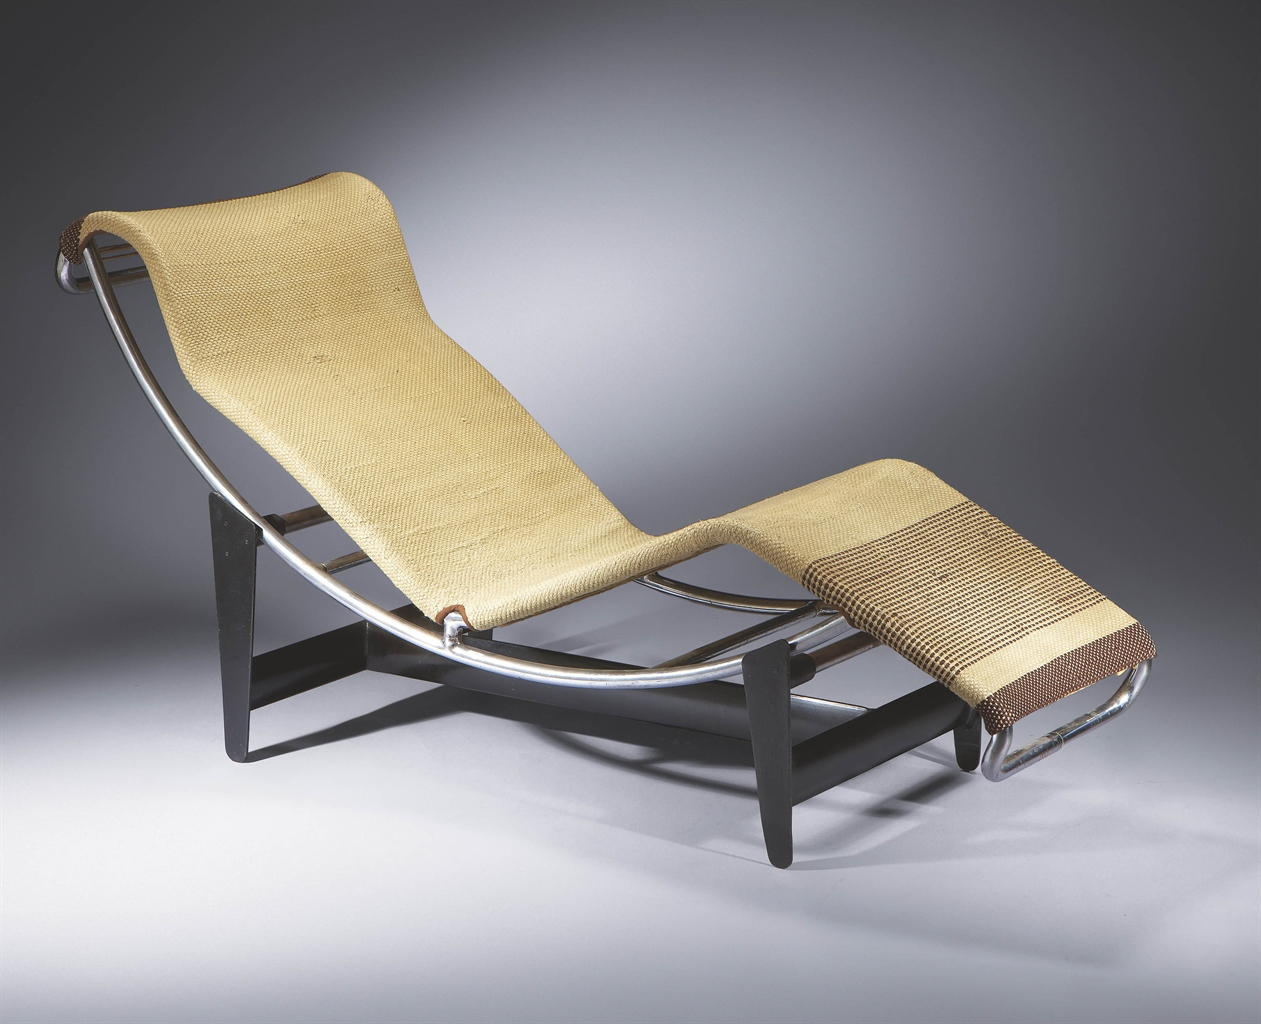 Le corbusier 1887 1965 pierre jeanneret 1896 1967 et for Chaise longue b306